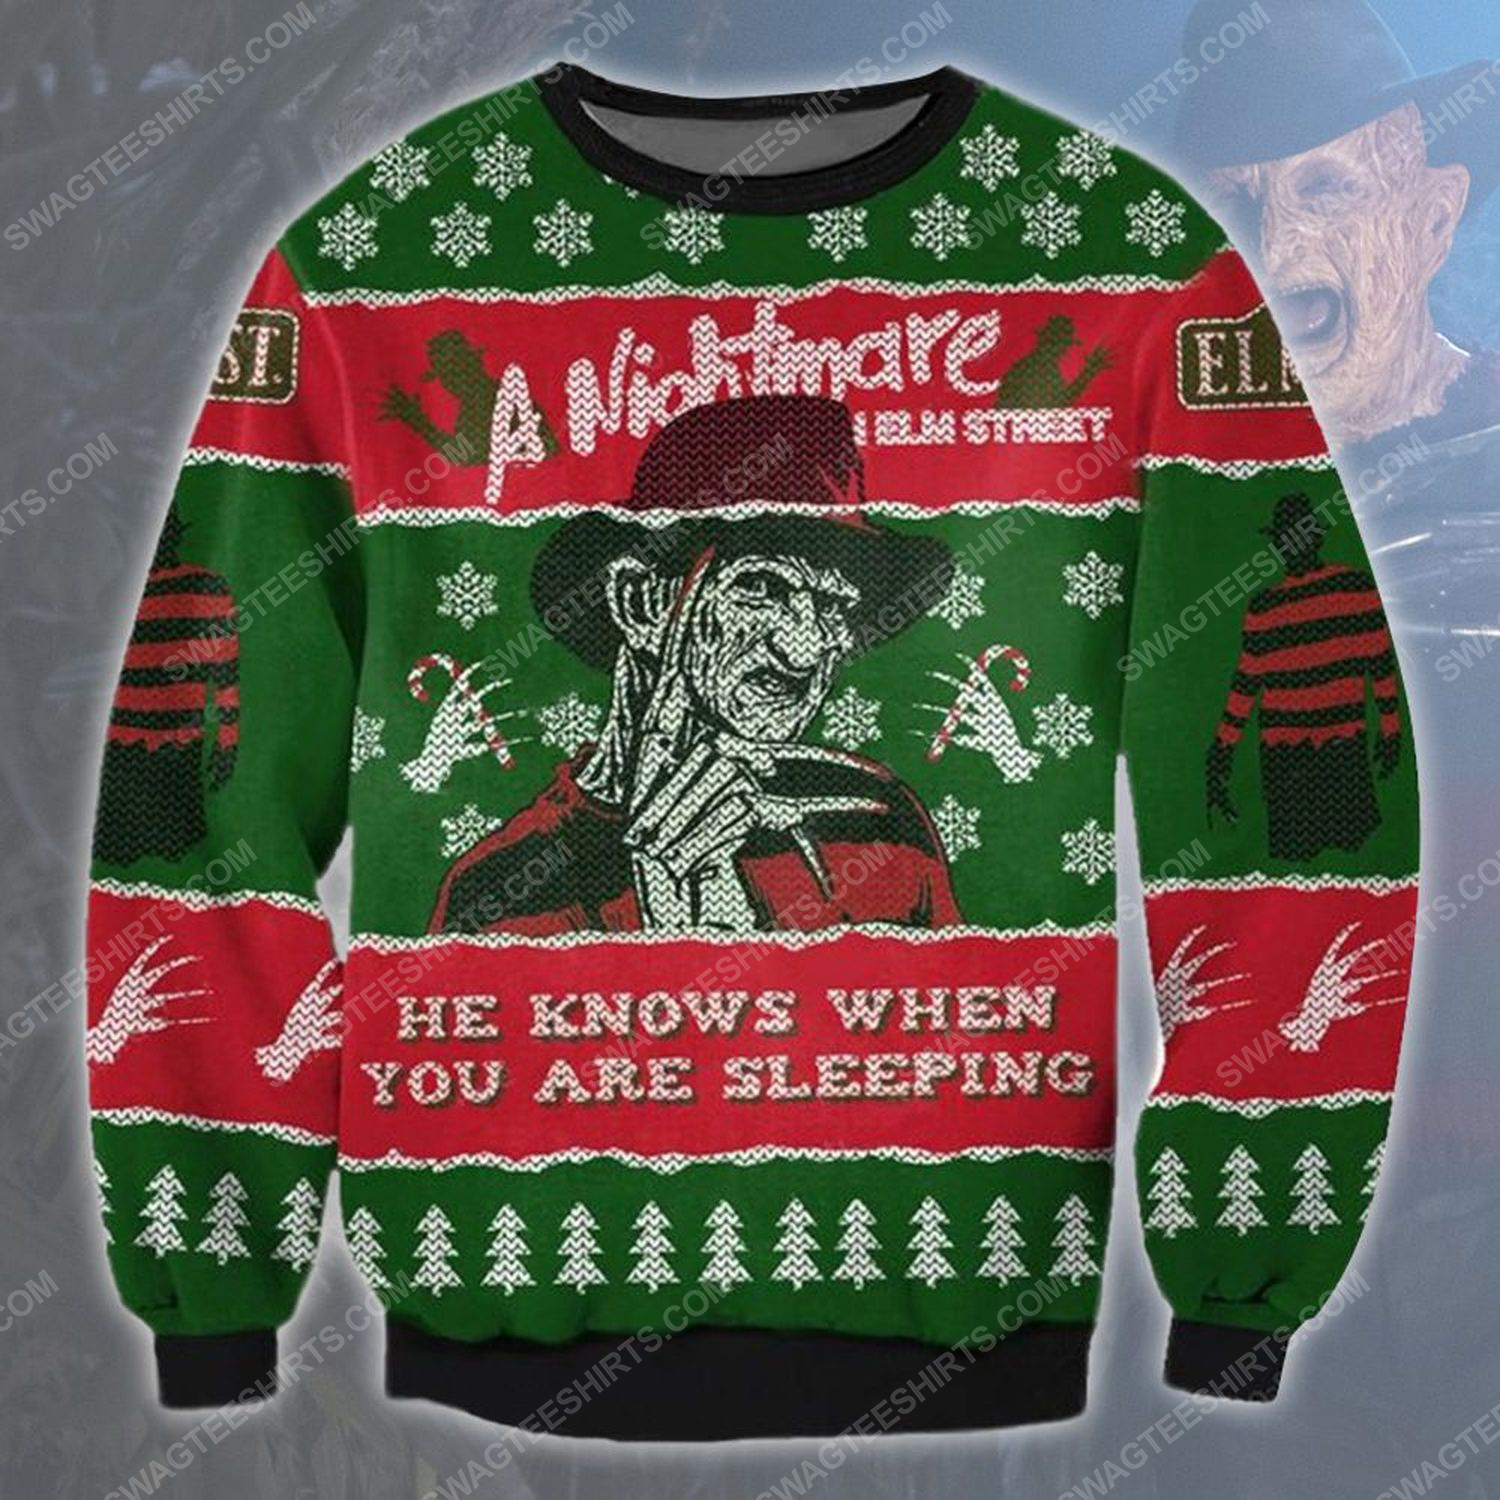 A nightmare on elm street he know when you are sleeping ugly christmas sweater - Copy (2)